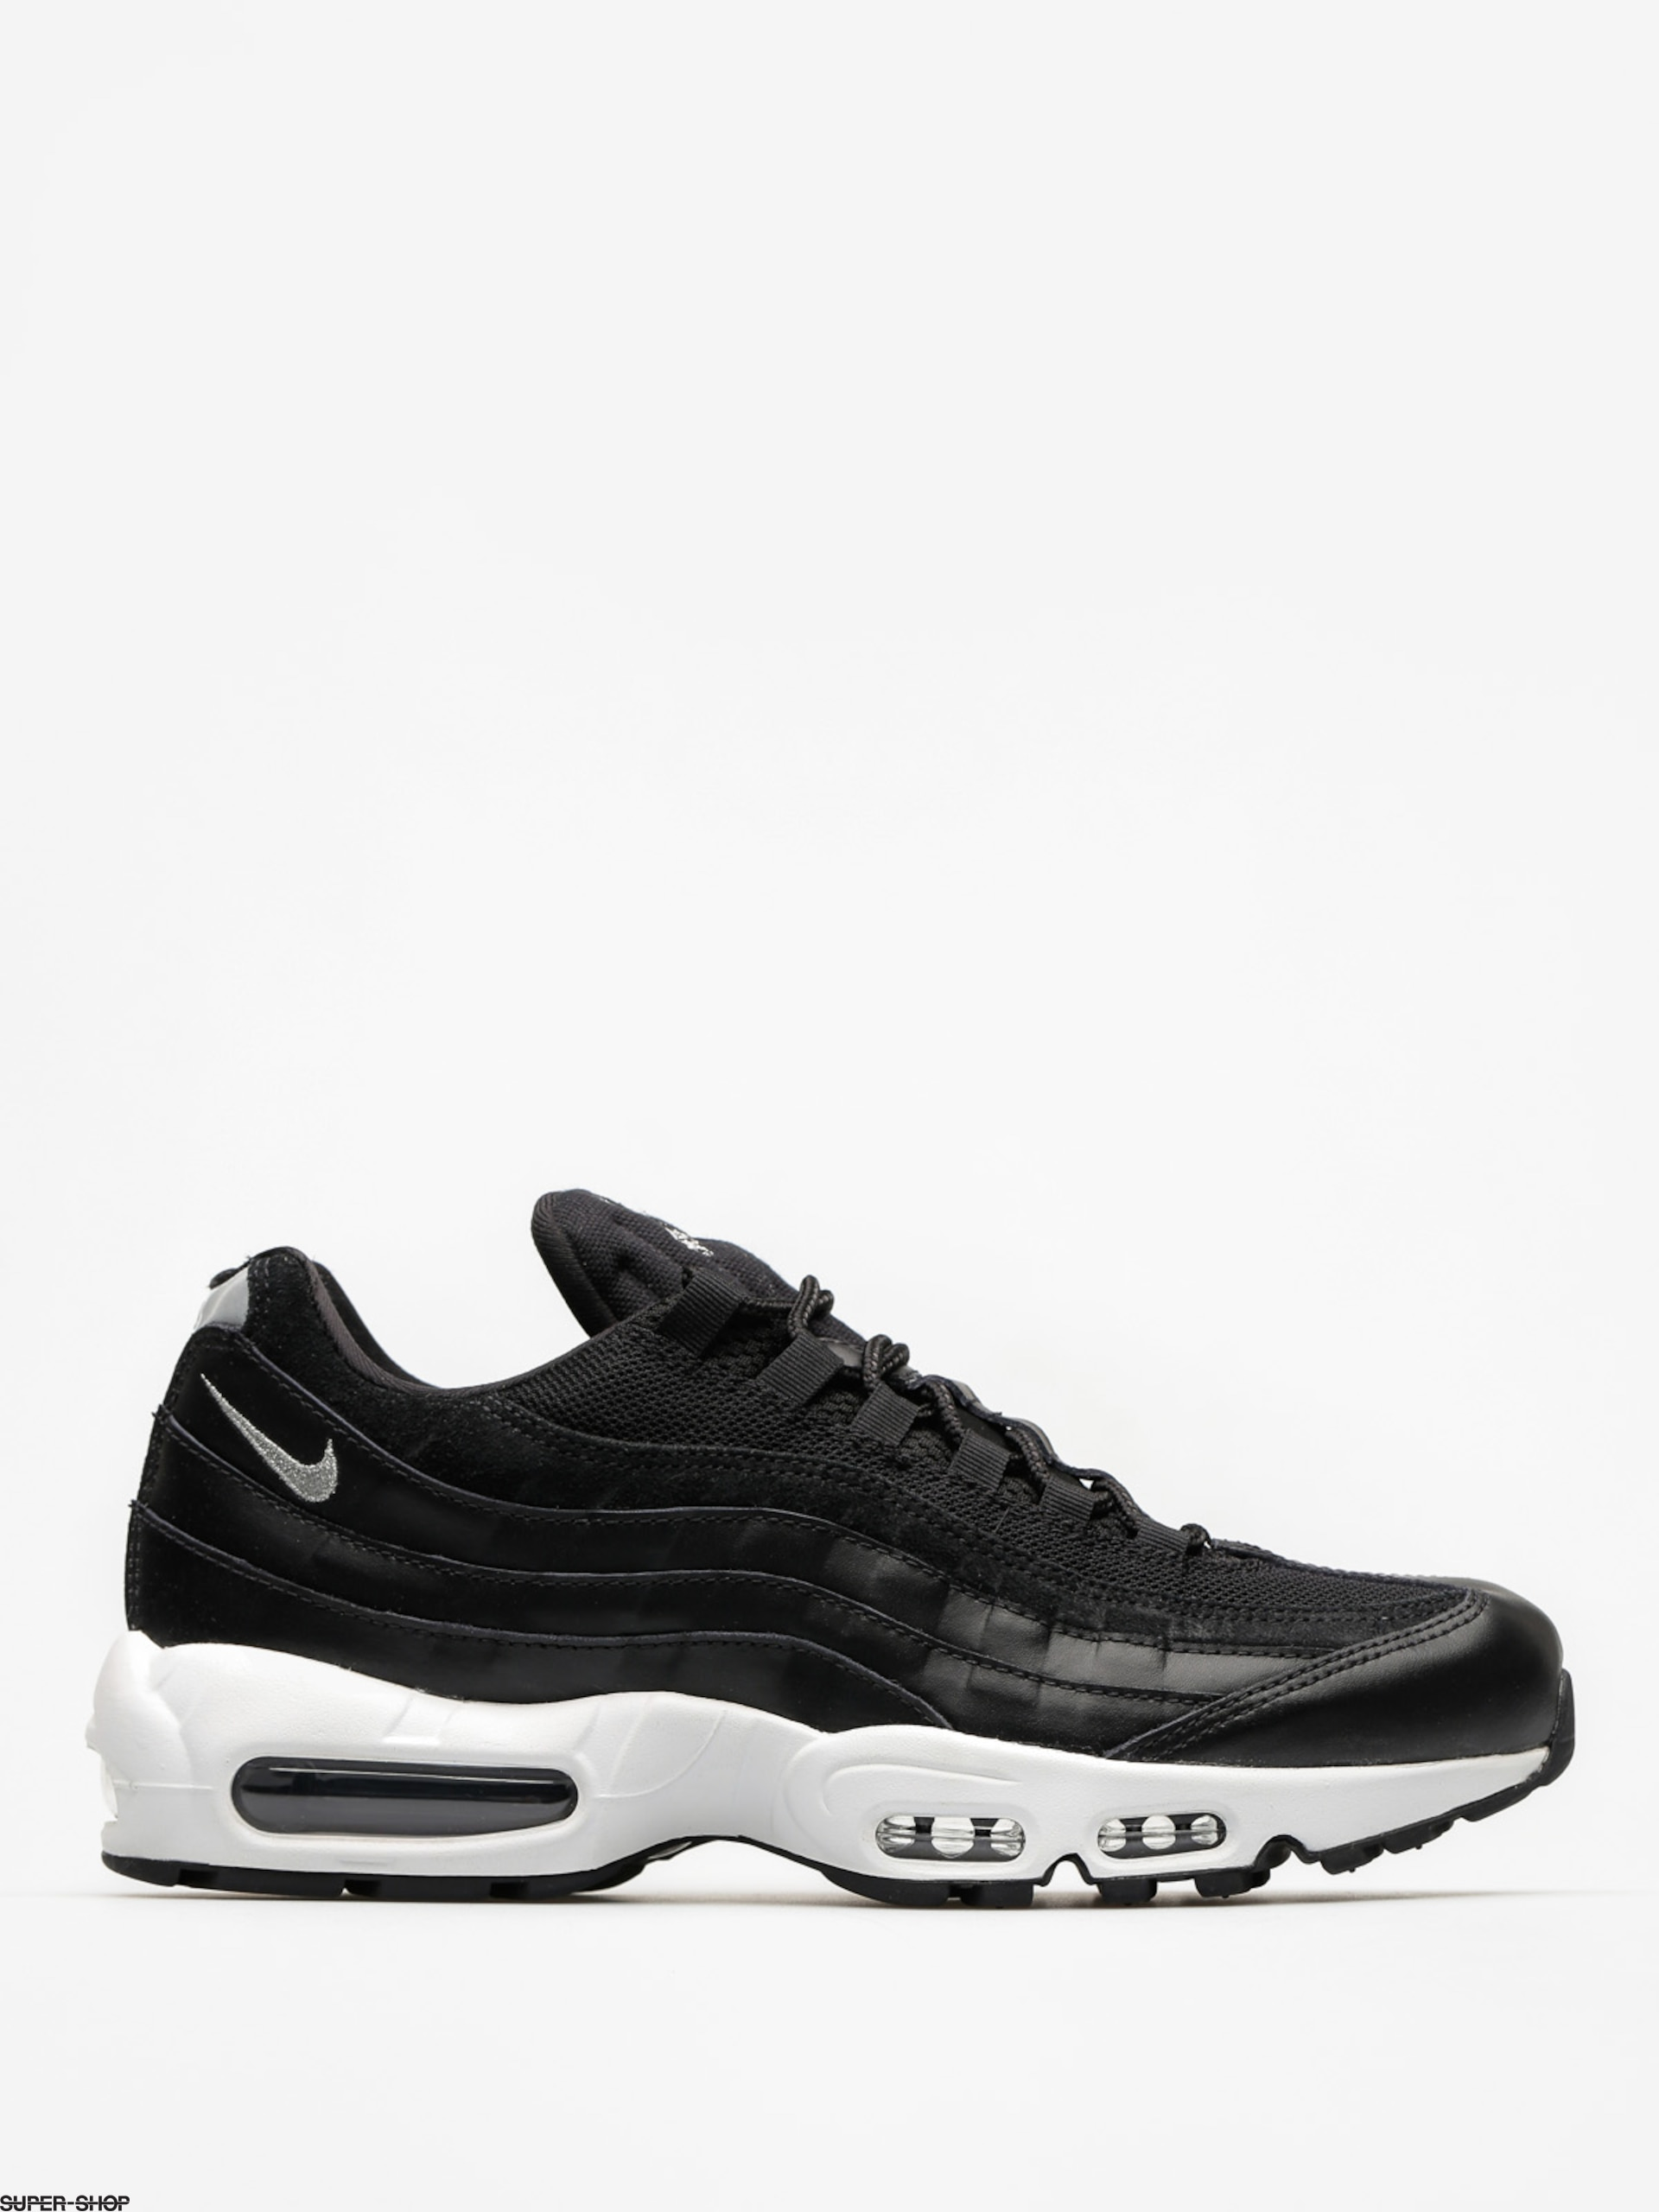 Nike Schuhe Air Max 95 Premium (black/chrome black off white)